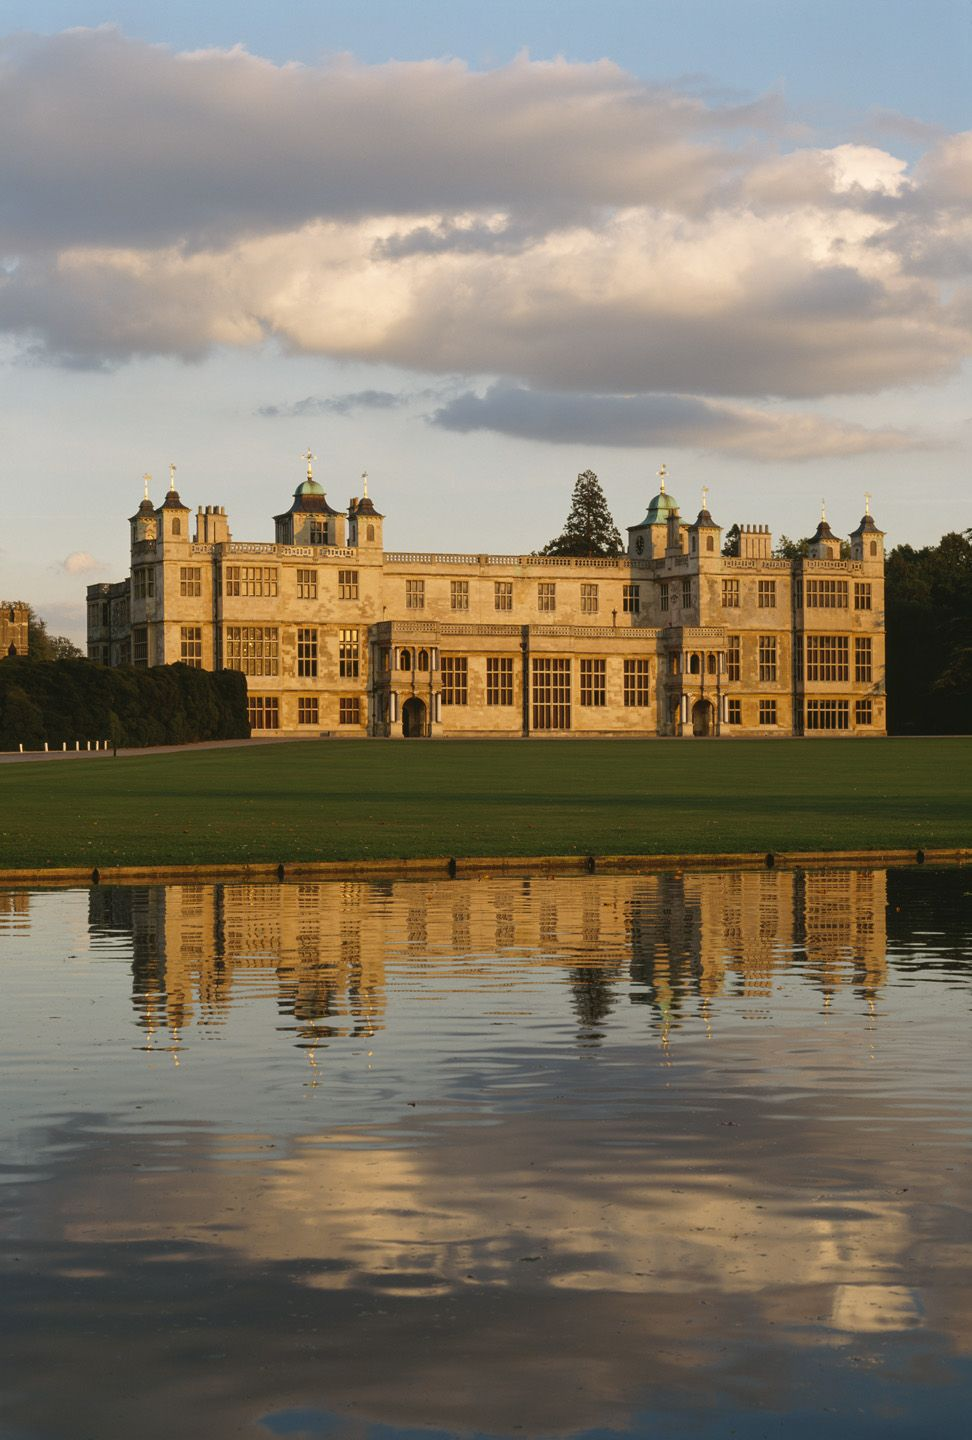 Audley end house is an early th century country house in essex